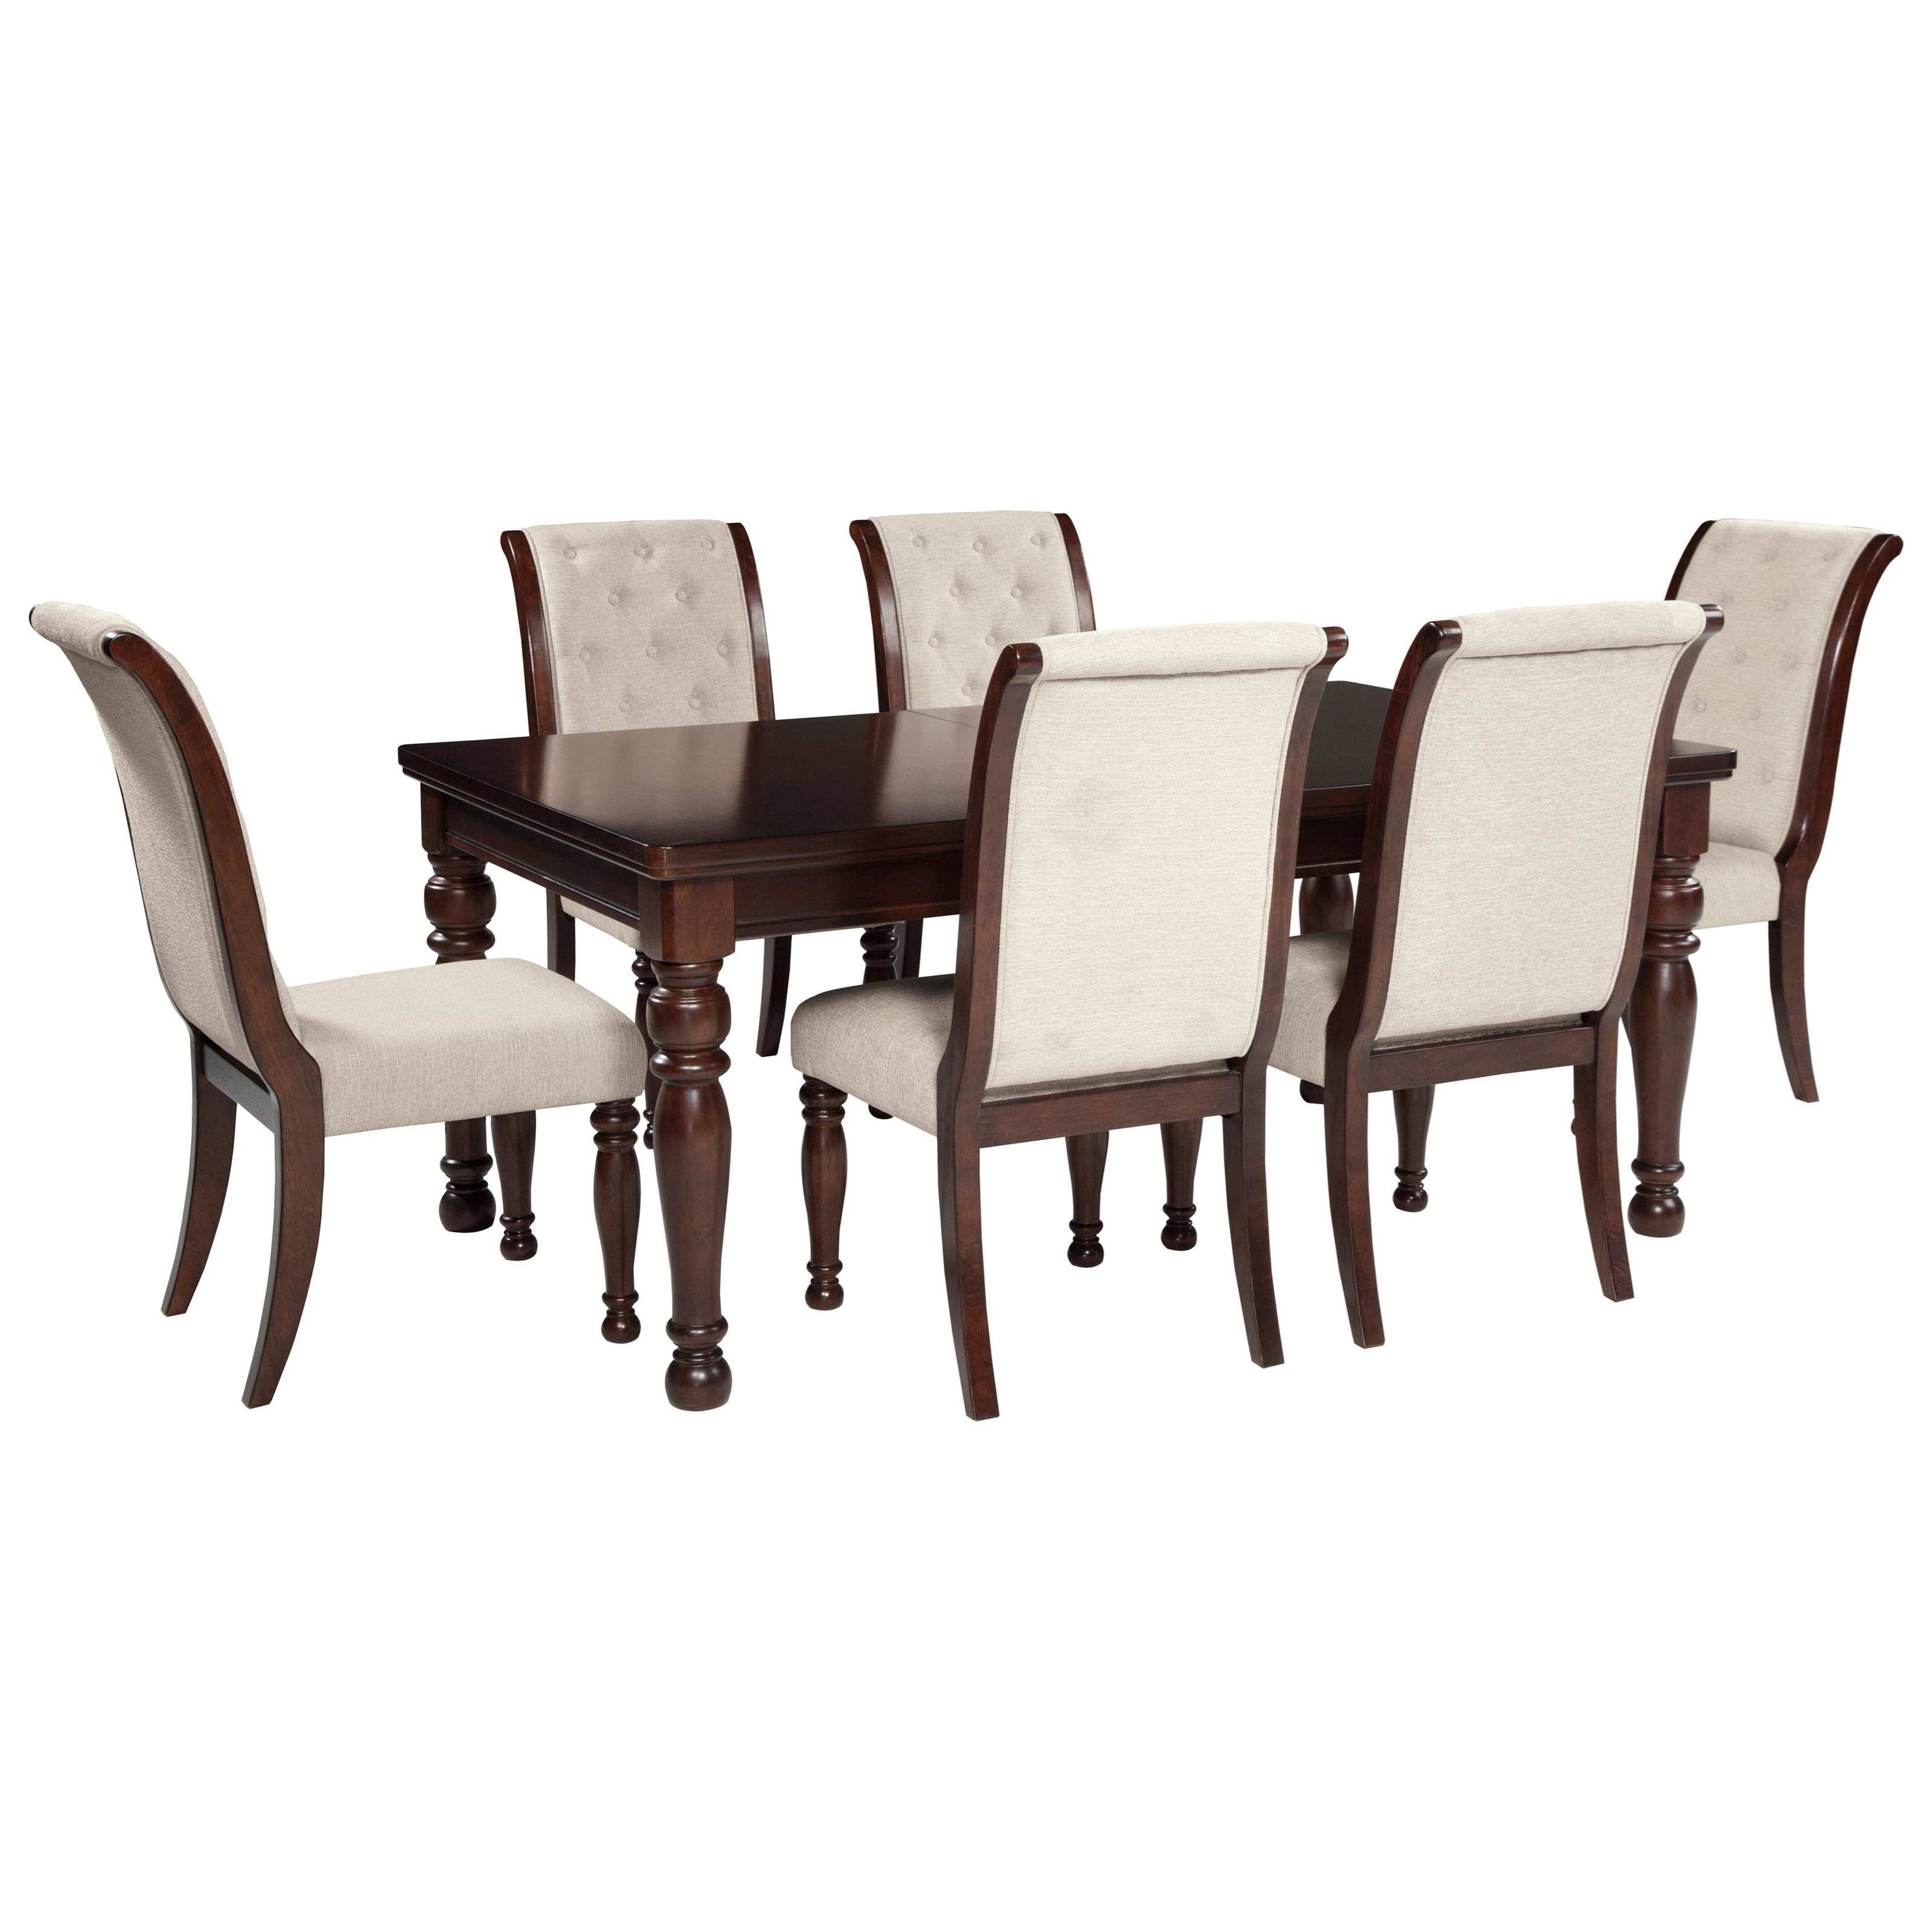 Porter 7 Piece Table & Chair Set by Ashley Furniture at Beck's Furniture